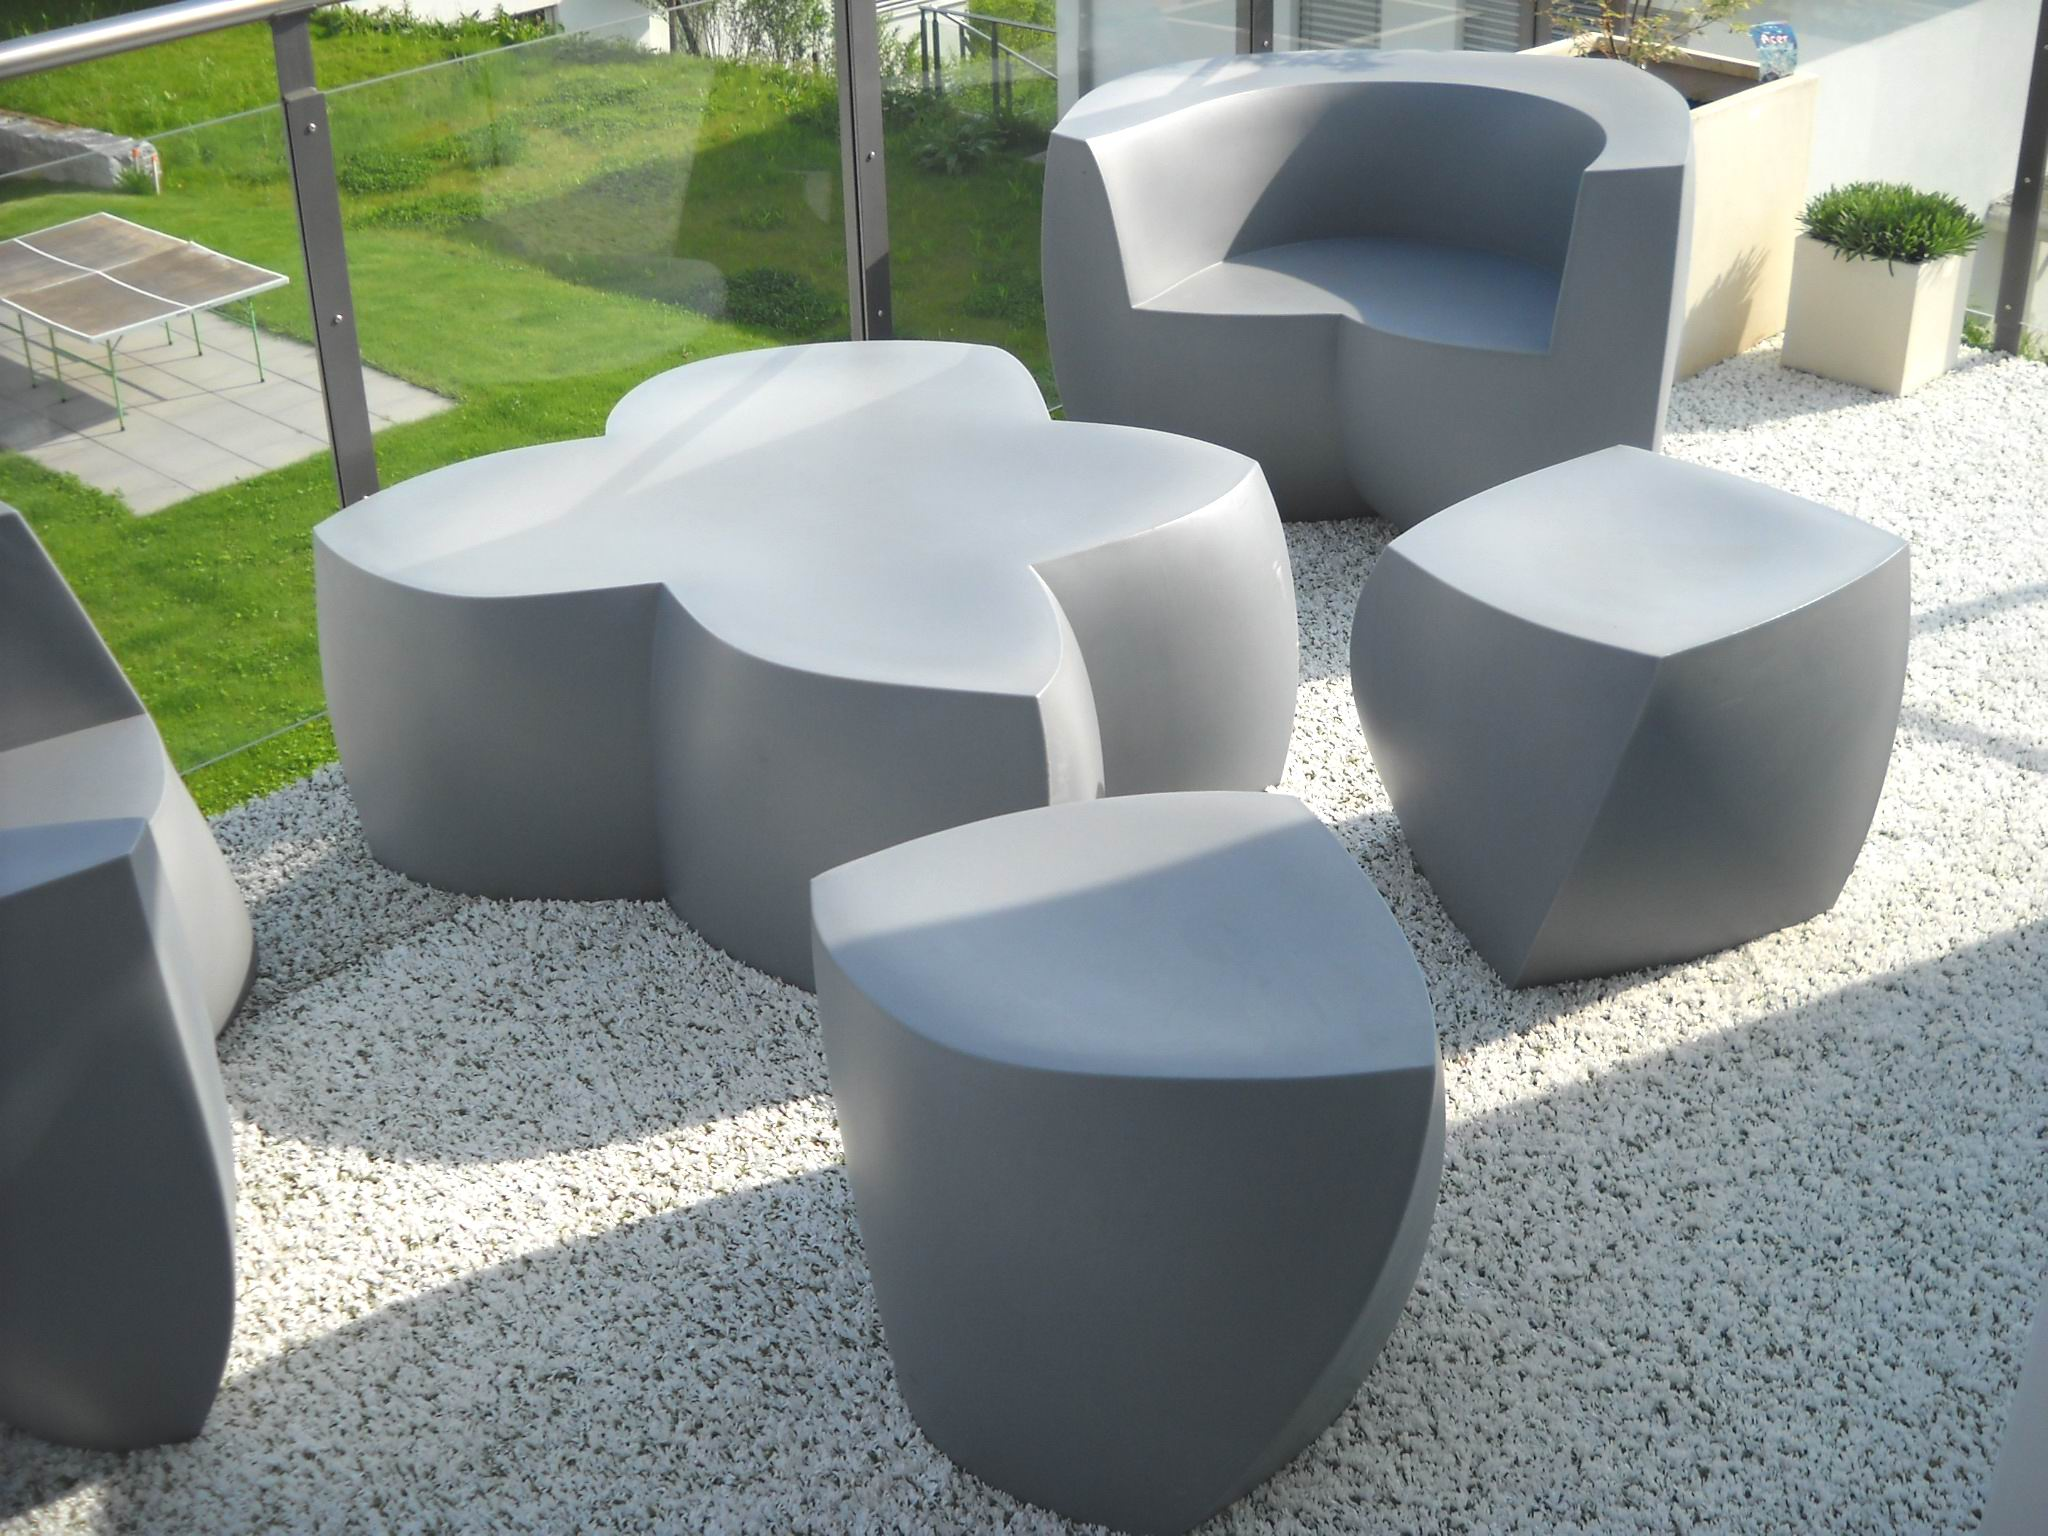 Outdoor Teppich Tisca Tisca Applications Outdoor Areas